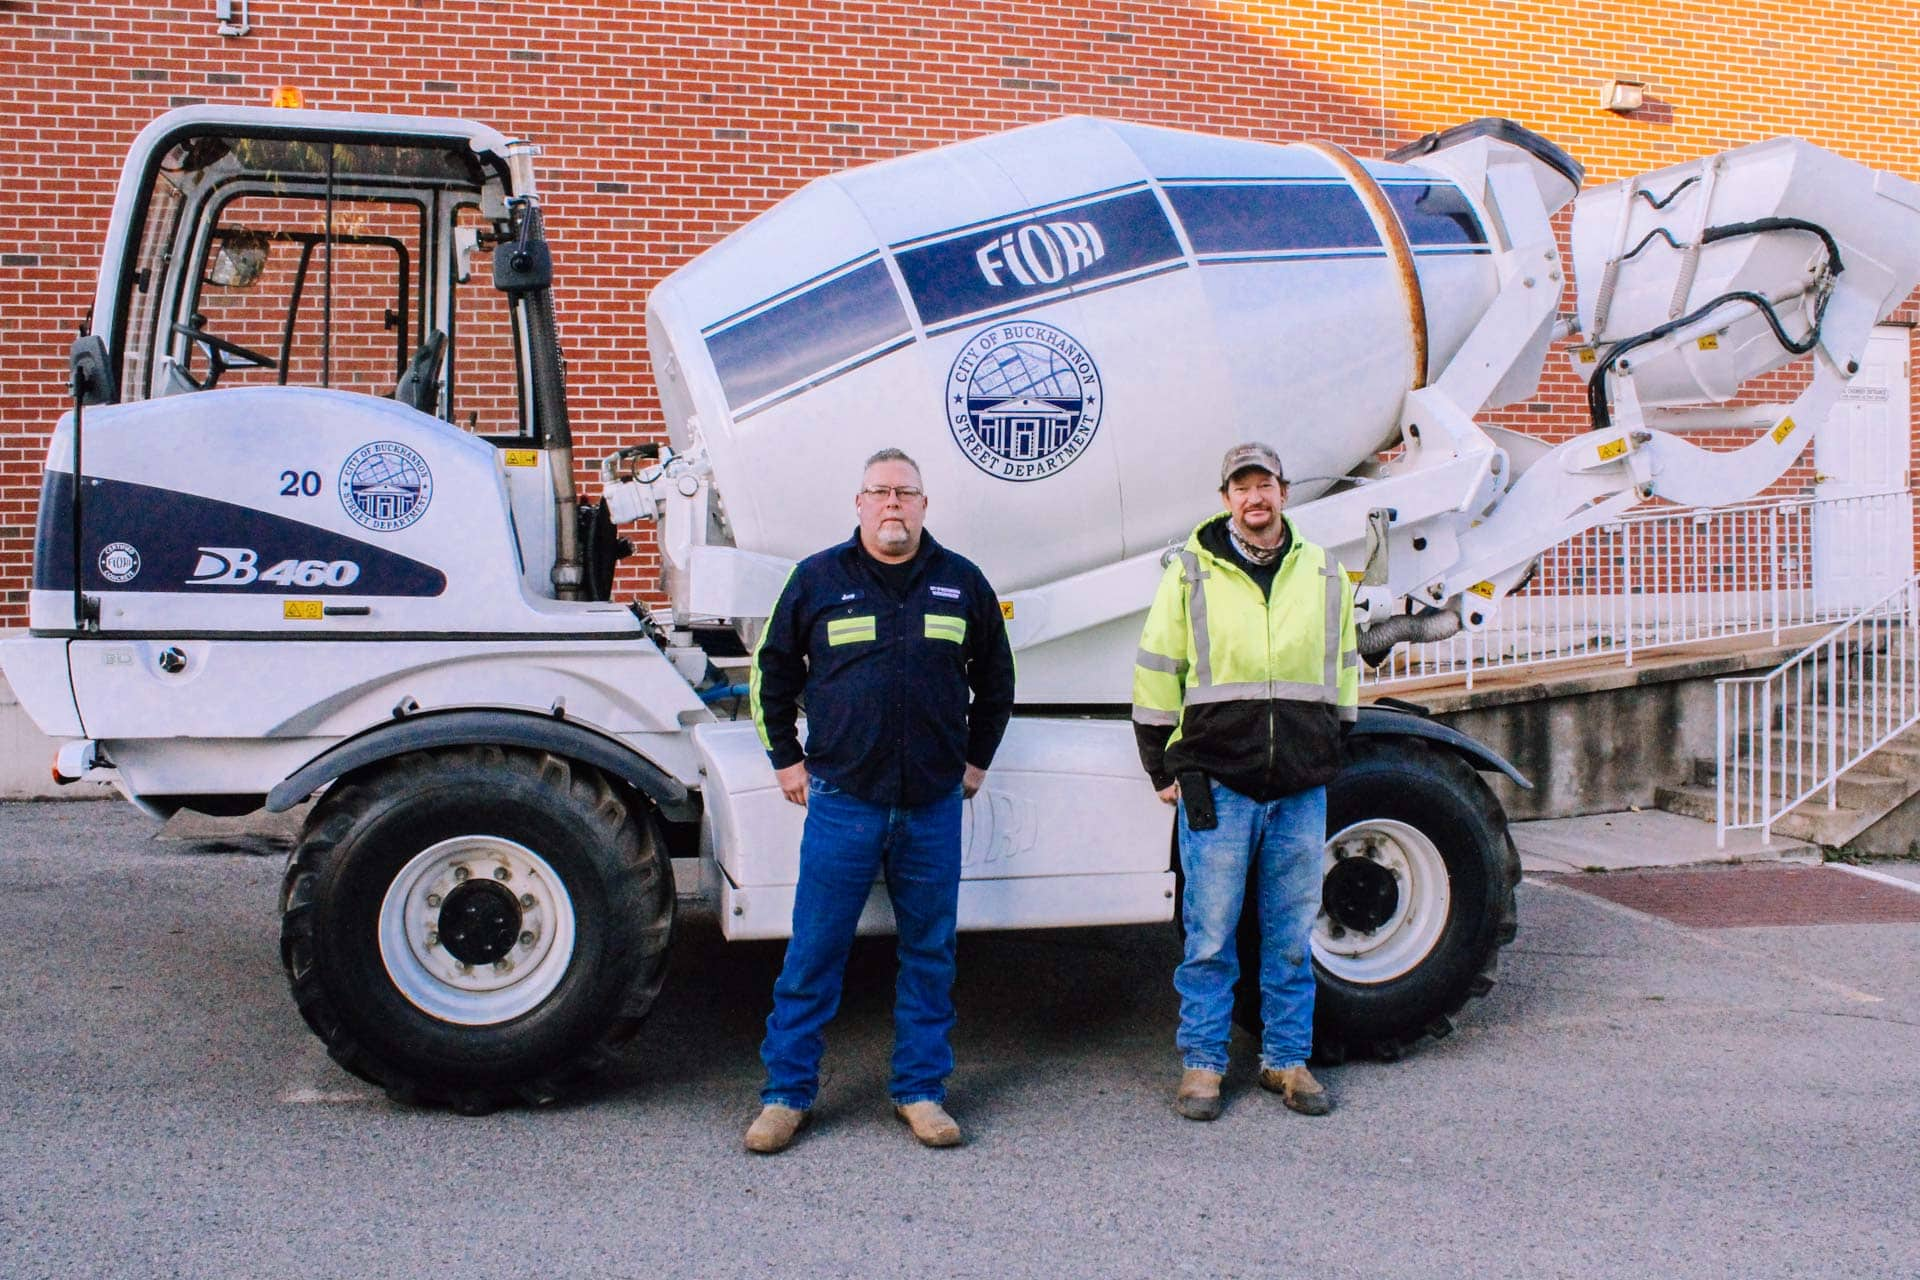 City's new concrete mixer will allow projects to be completed faster and cheaper